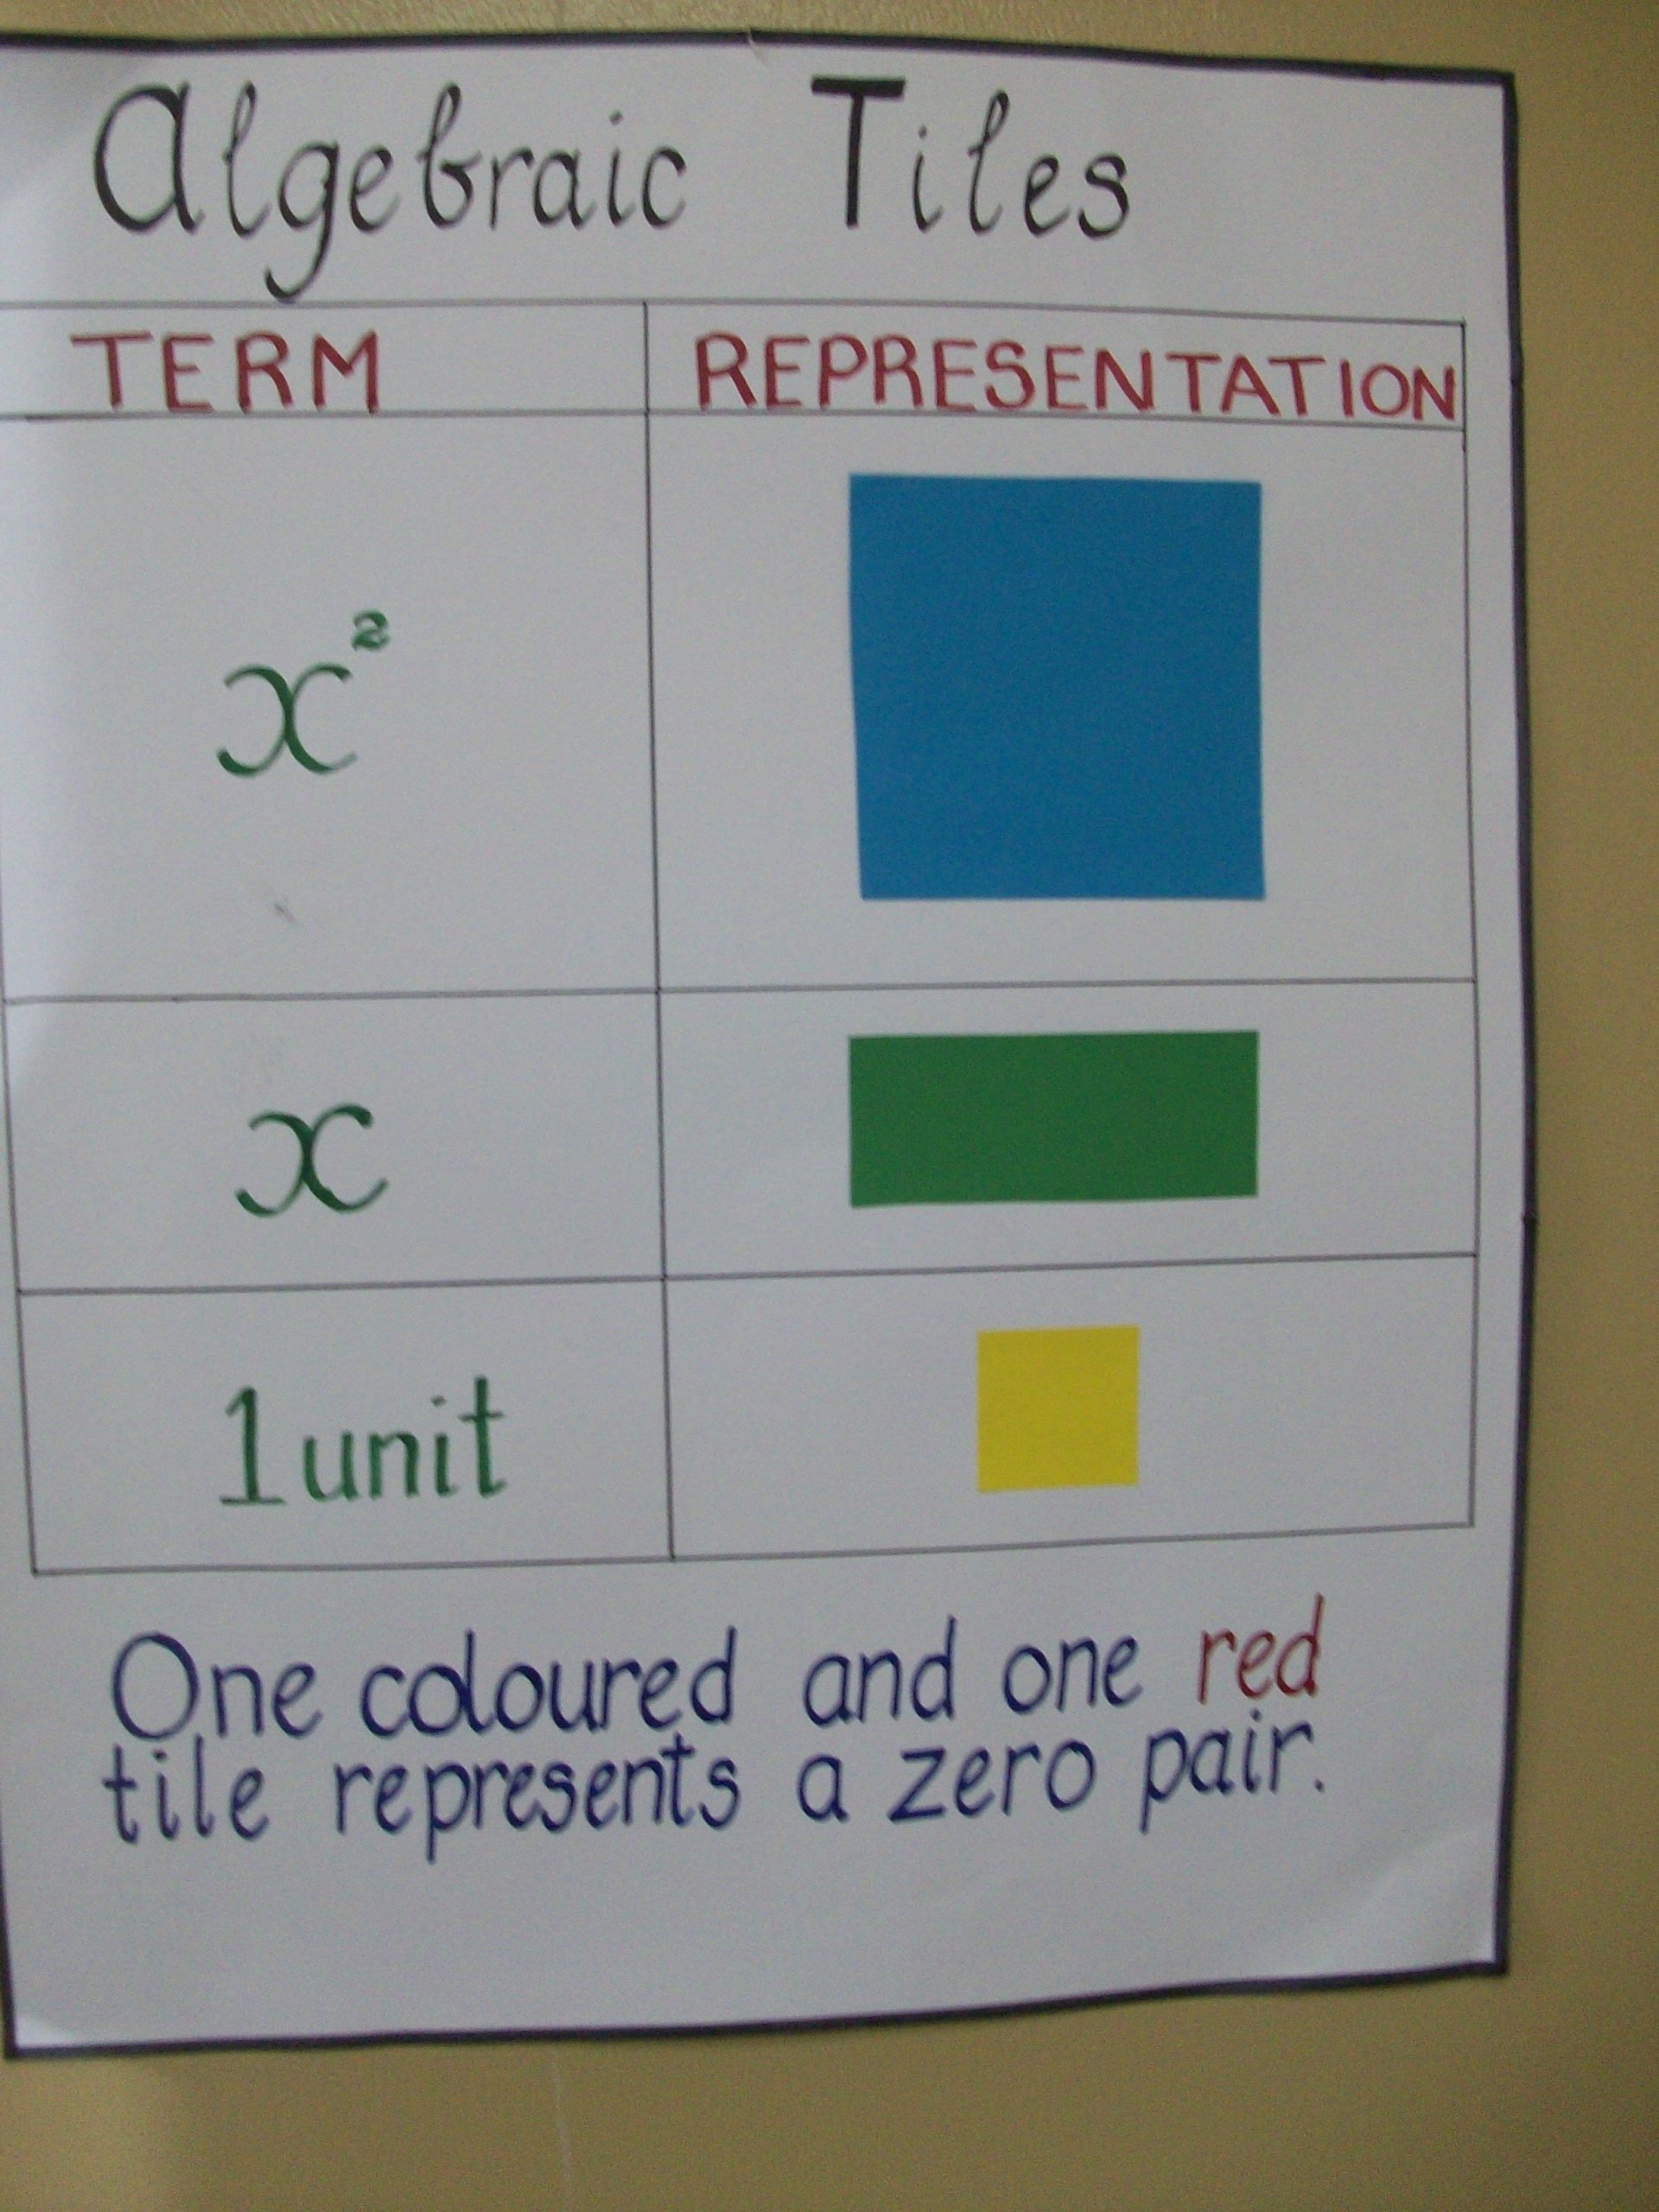 Algebra Tiles Worksheets 6th Grade My Gentle Reminder to Students Algebraic Tiles